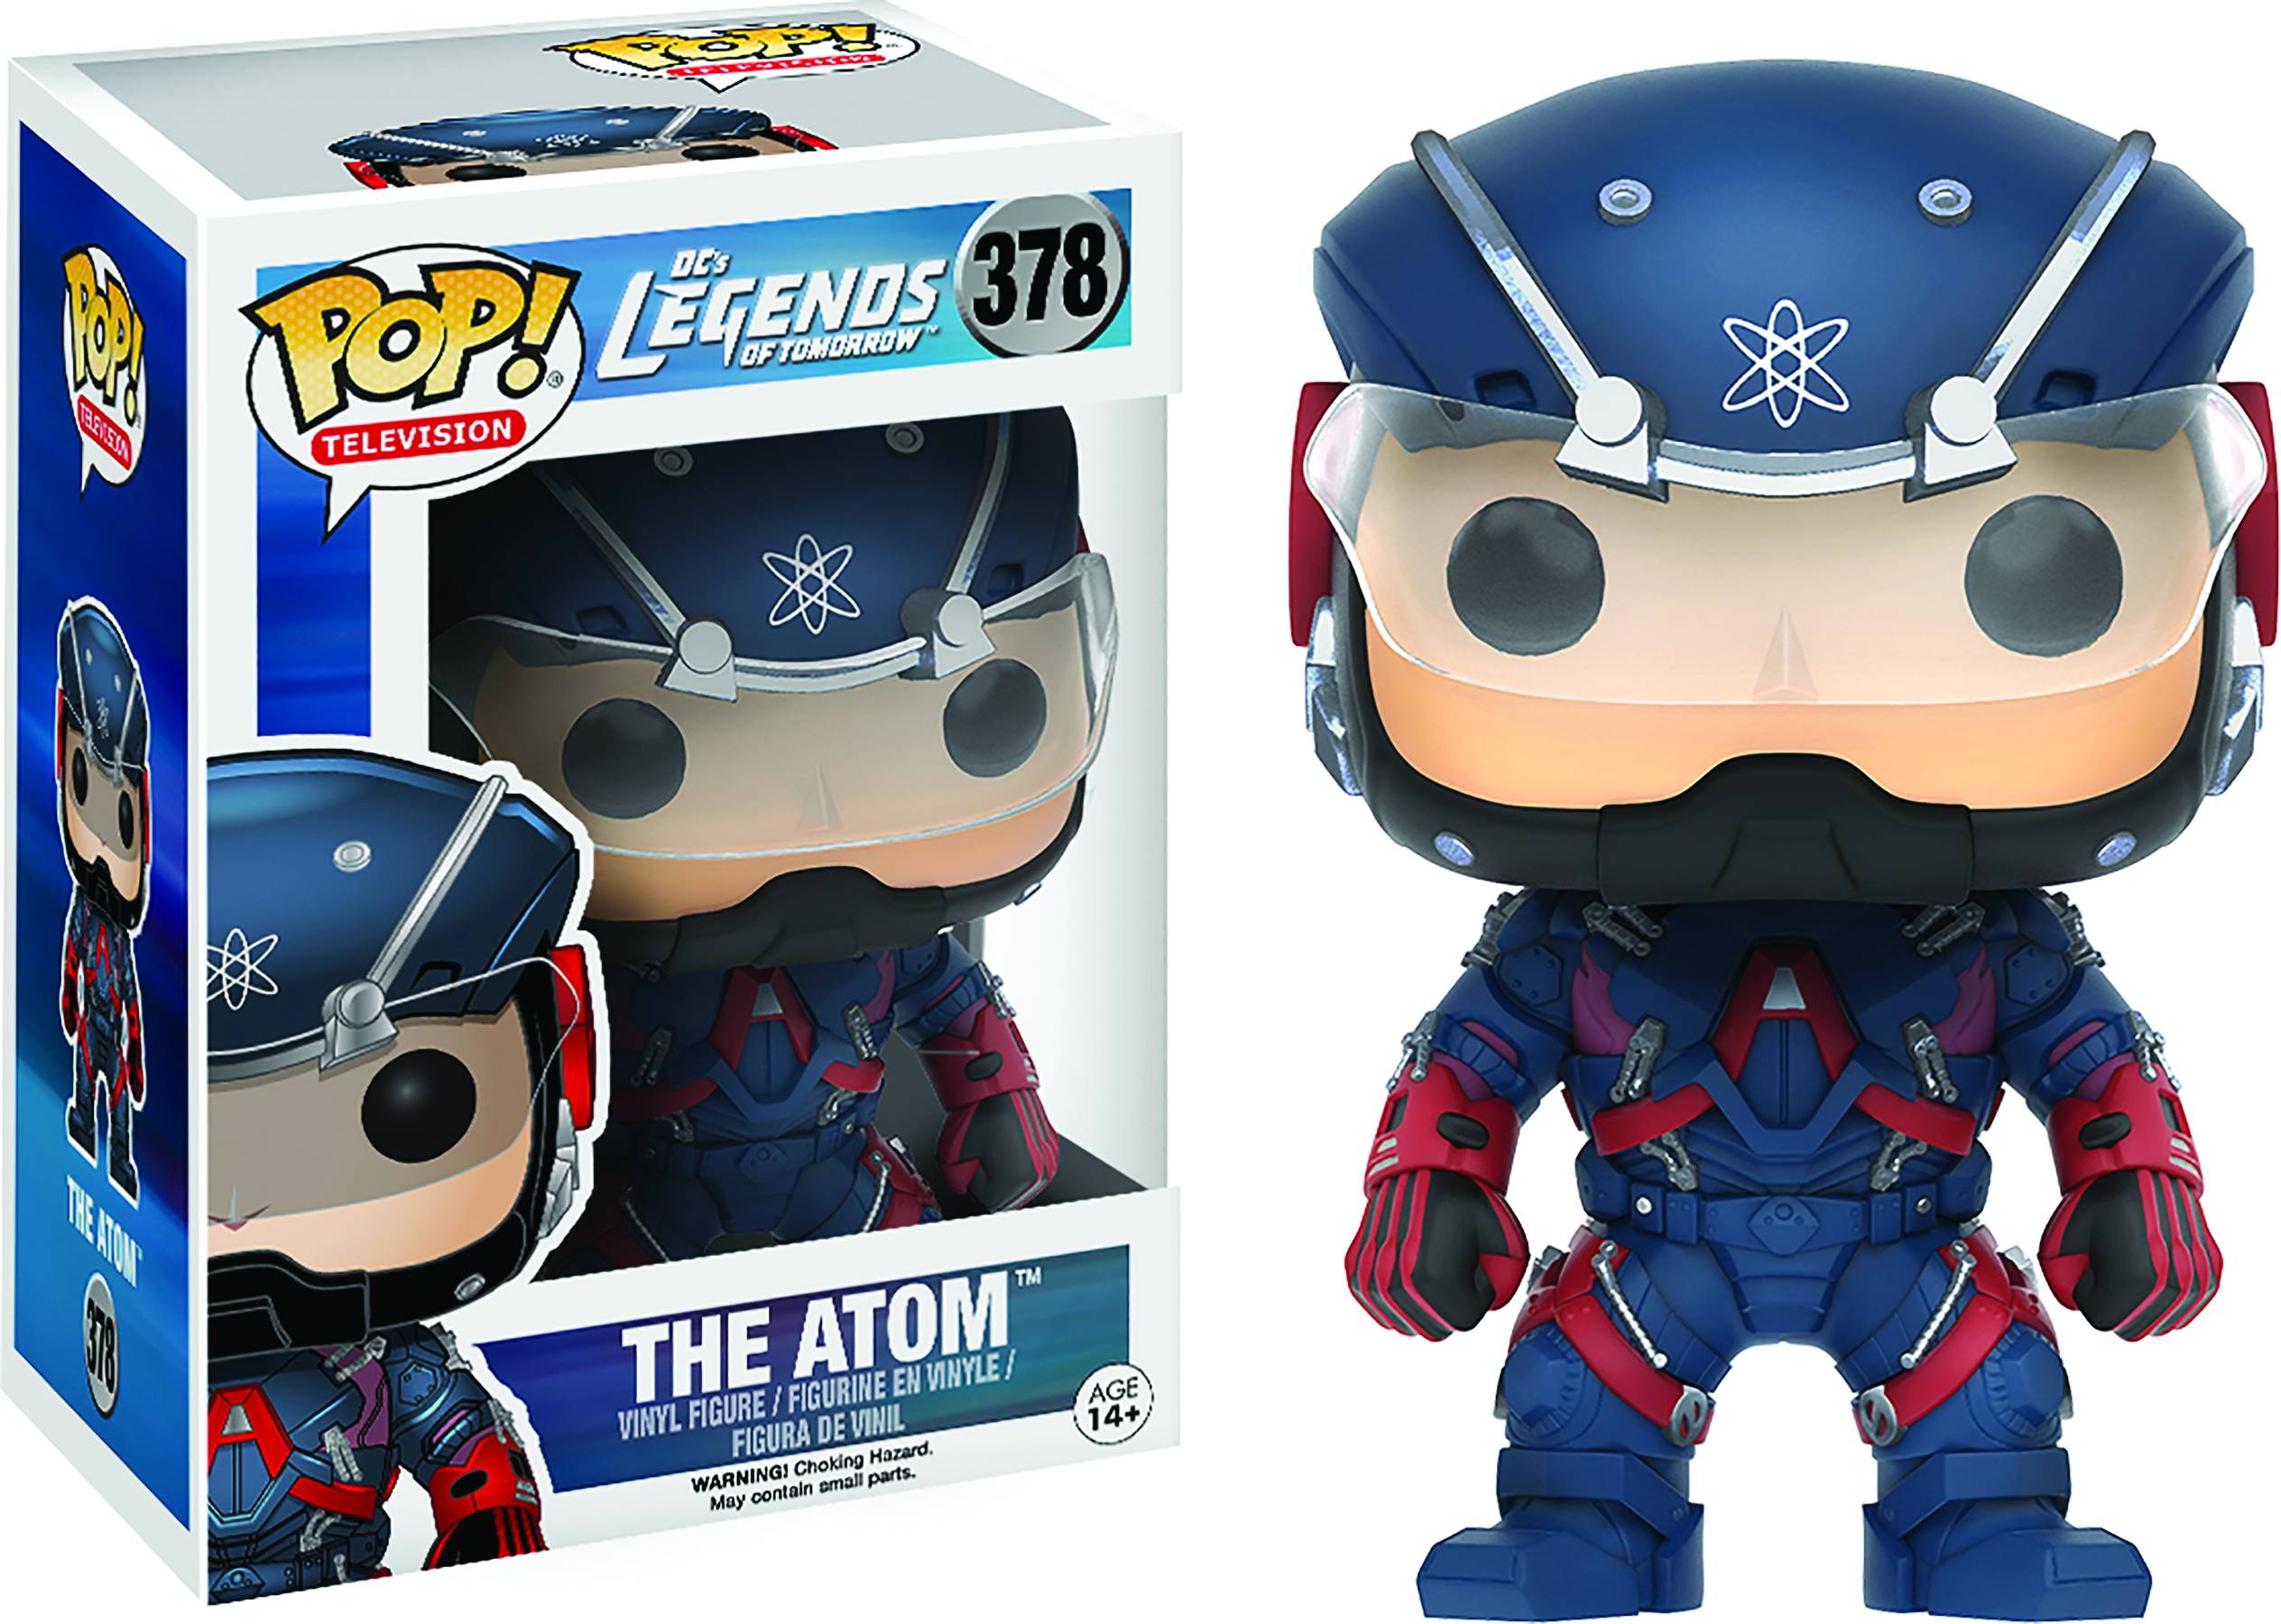 POP LEGENDS OF TOMORROW ATOM VINYL FIG